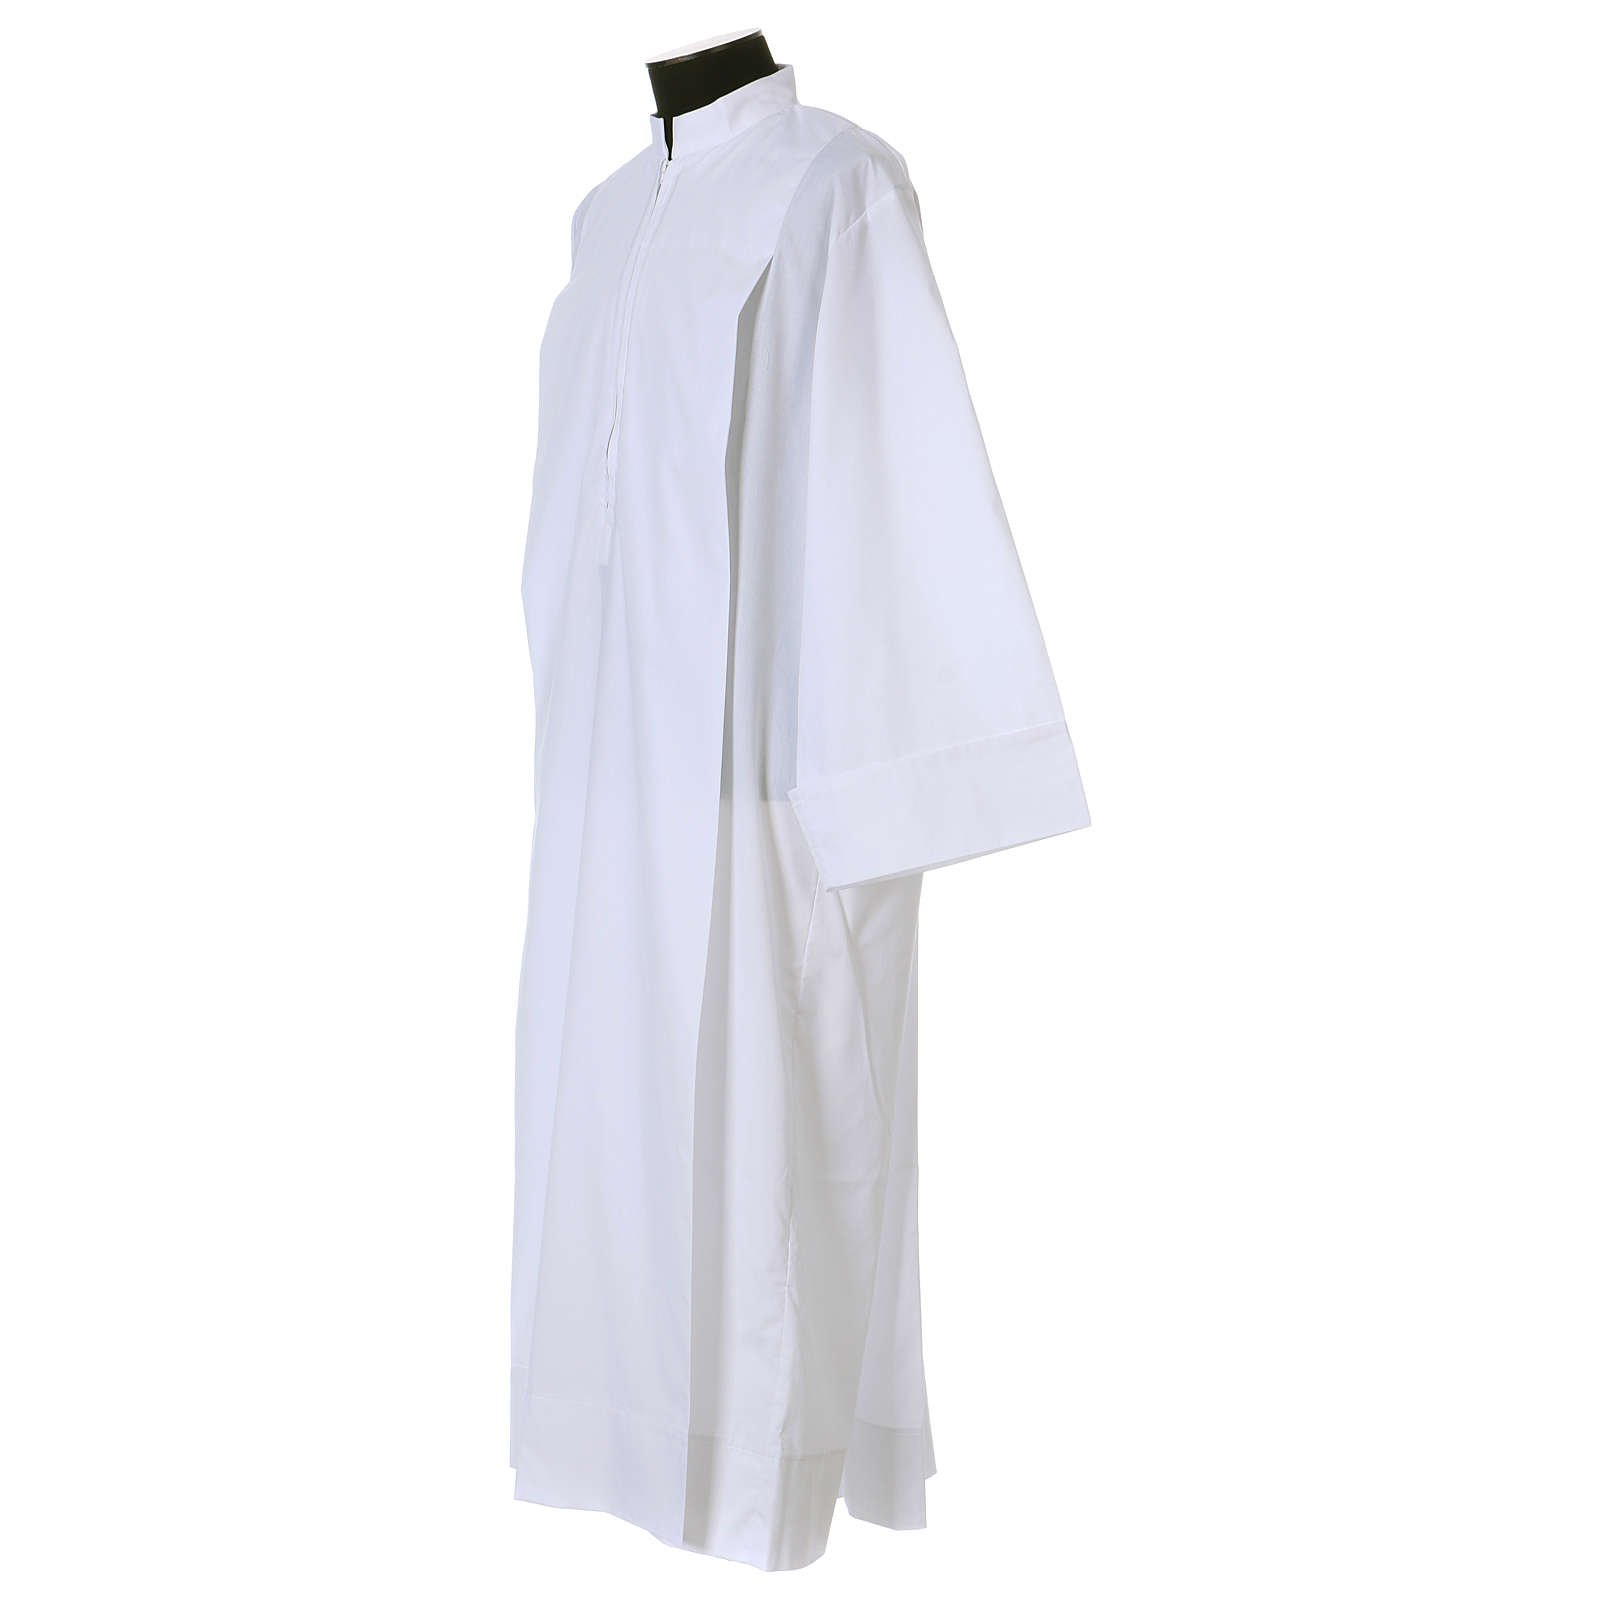 Clerical Alb with 2 pleats and front zipper, 65% polyester 35% cotton 4